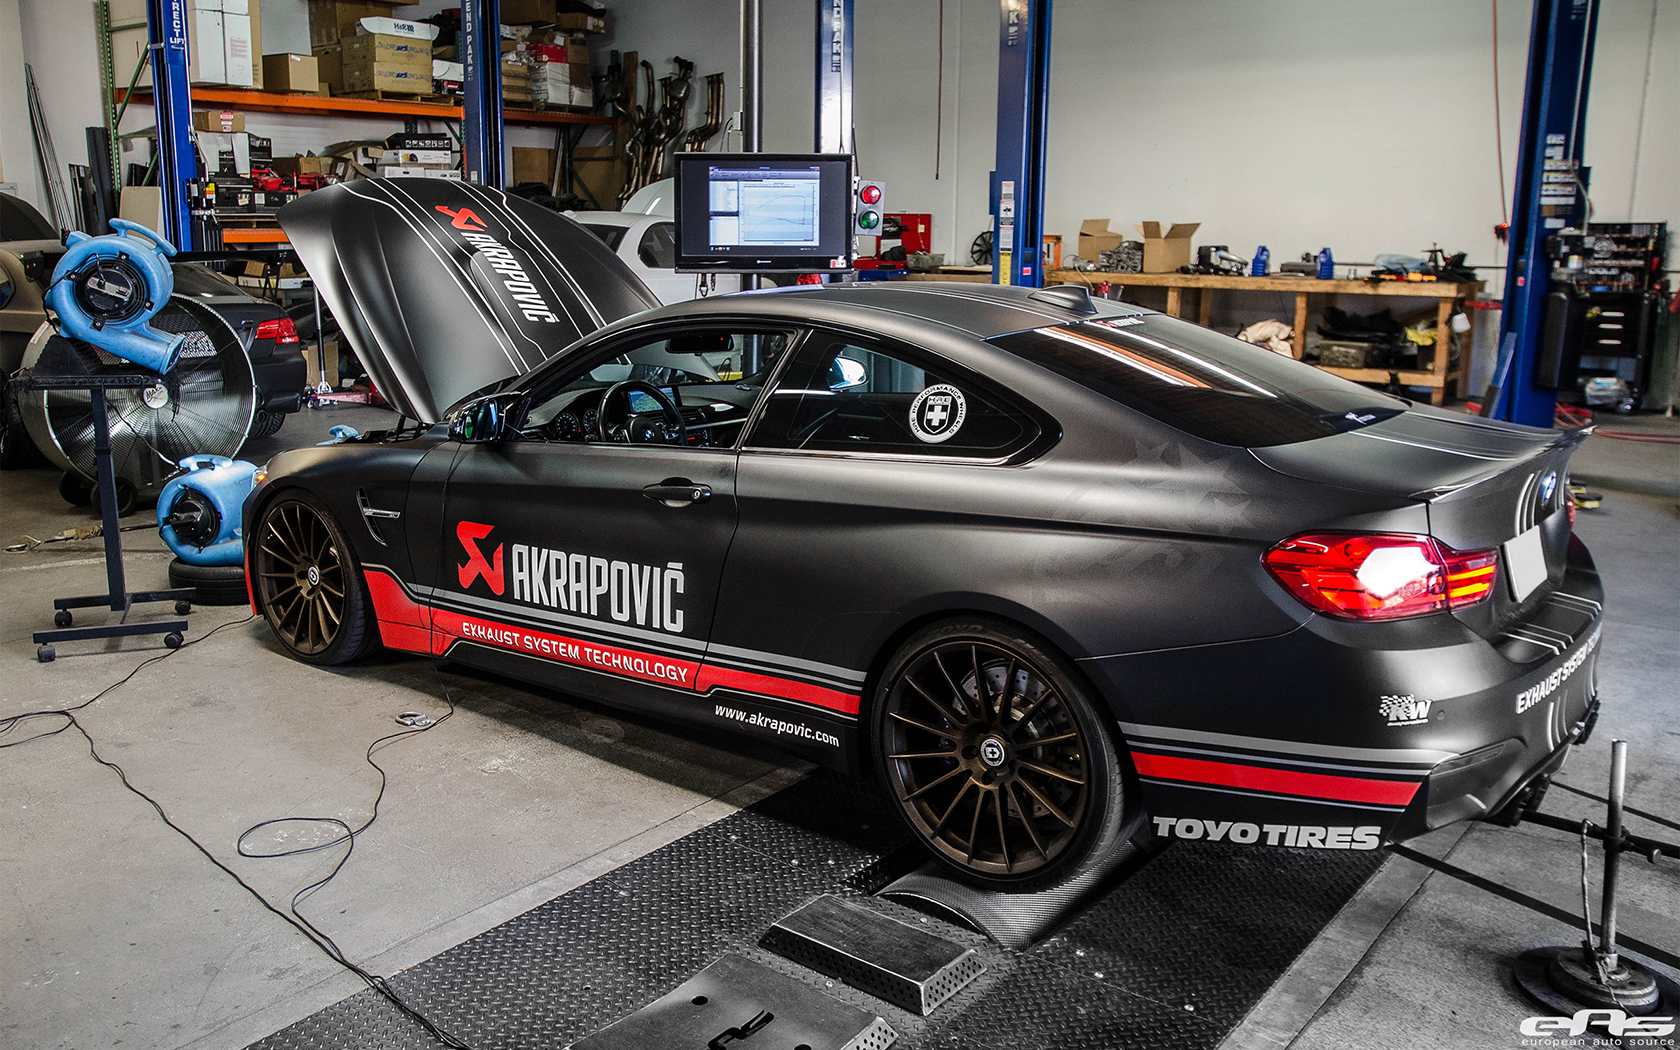 BMW F82 M4 With An Akrapovic Exhaust System 4